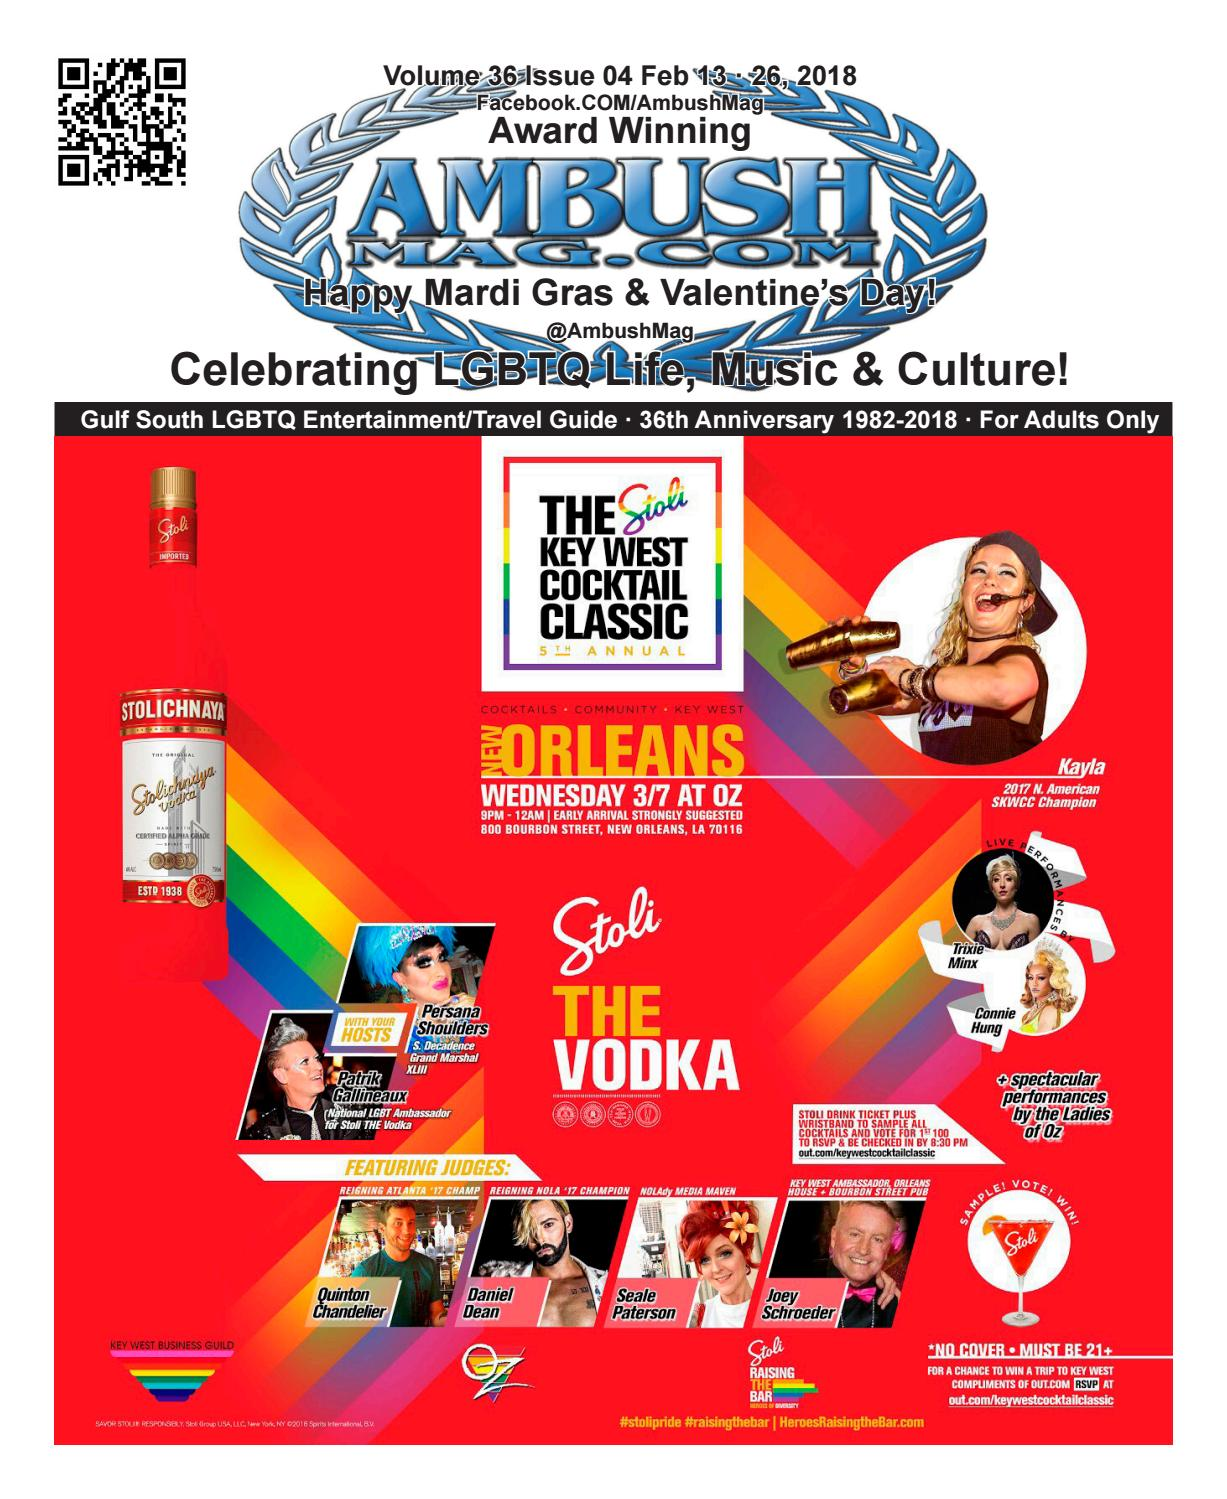 Hell Baby Nude Scene ambush magazine volume 36 issue 04ambush publishing - issuu